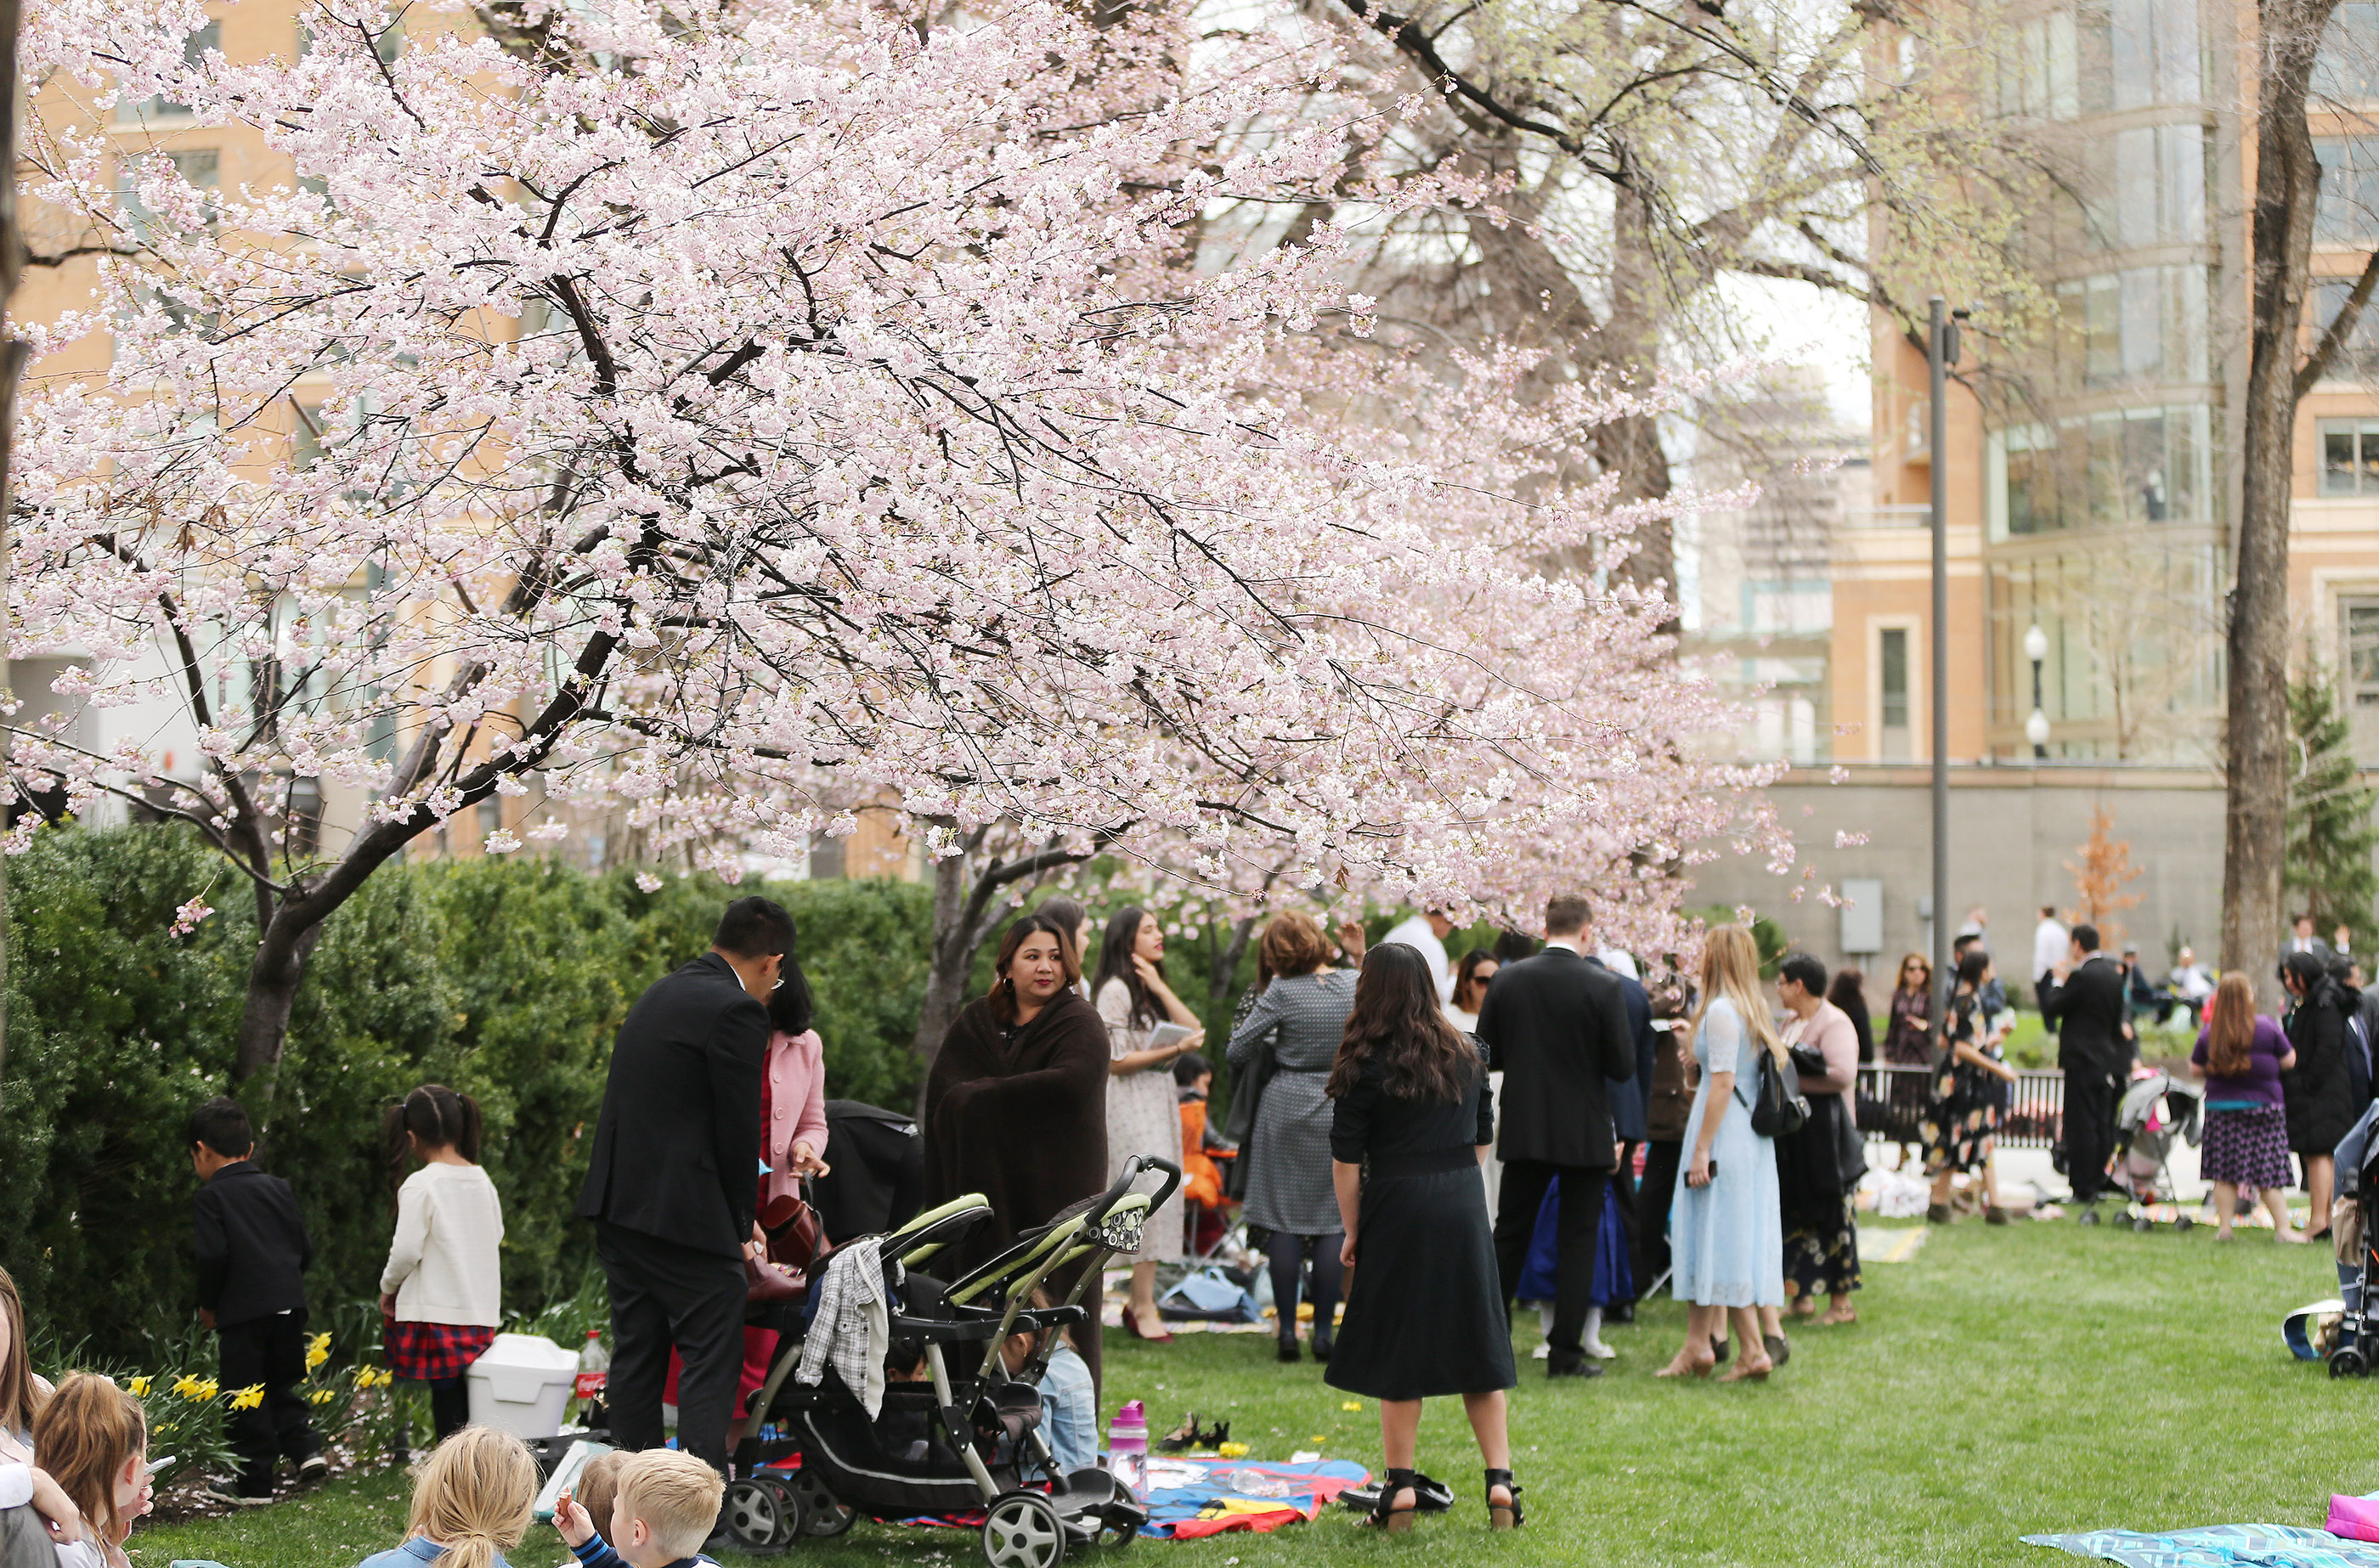 Conferencegoers stand near blossoming trees during the 189th Annual General Conference of The Church of Jesus Christ of Latter-day Saints in Salt Lake City on Sunday, April 7, 2019.